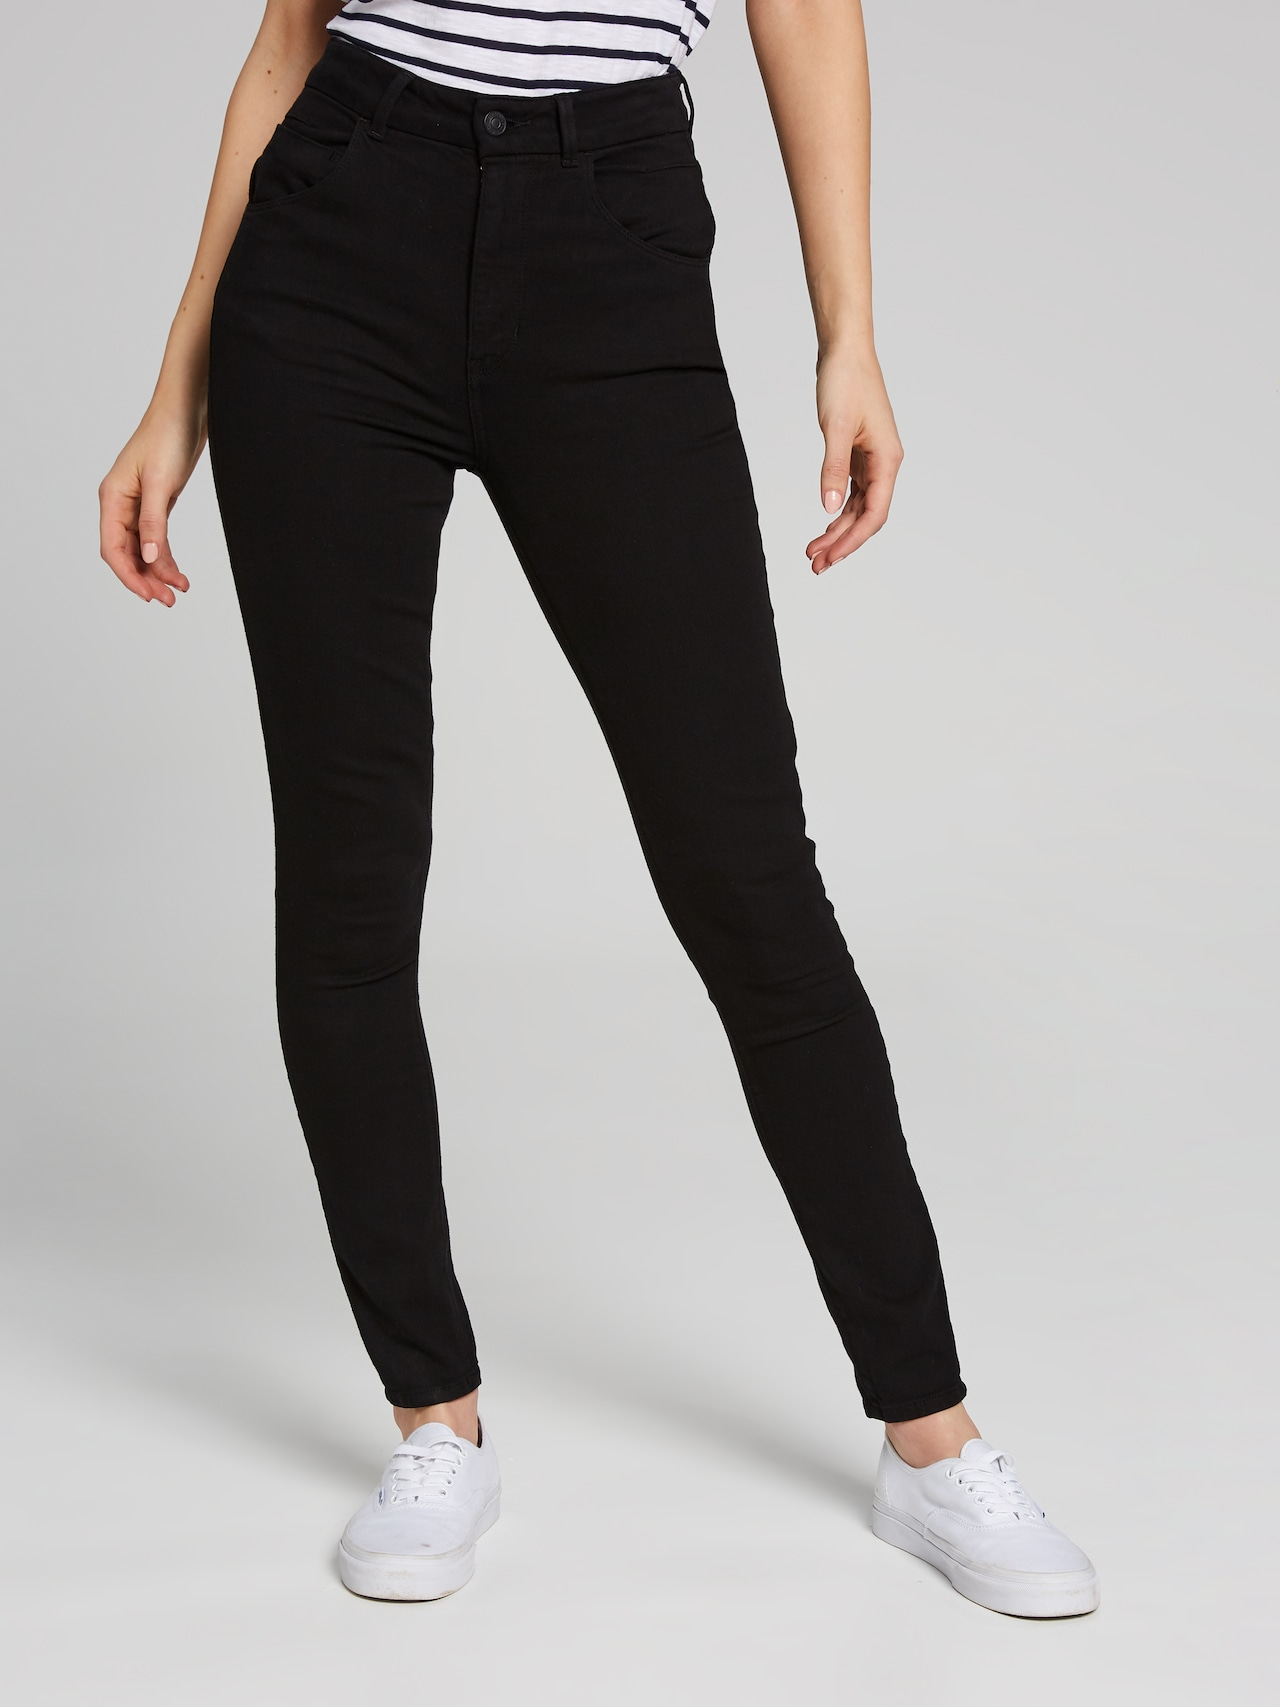 rich and magnificent great deals 2017 distinctive design Guess Super High Rise Jean In Black Overdye - Just Jeans Online